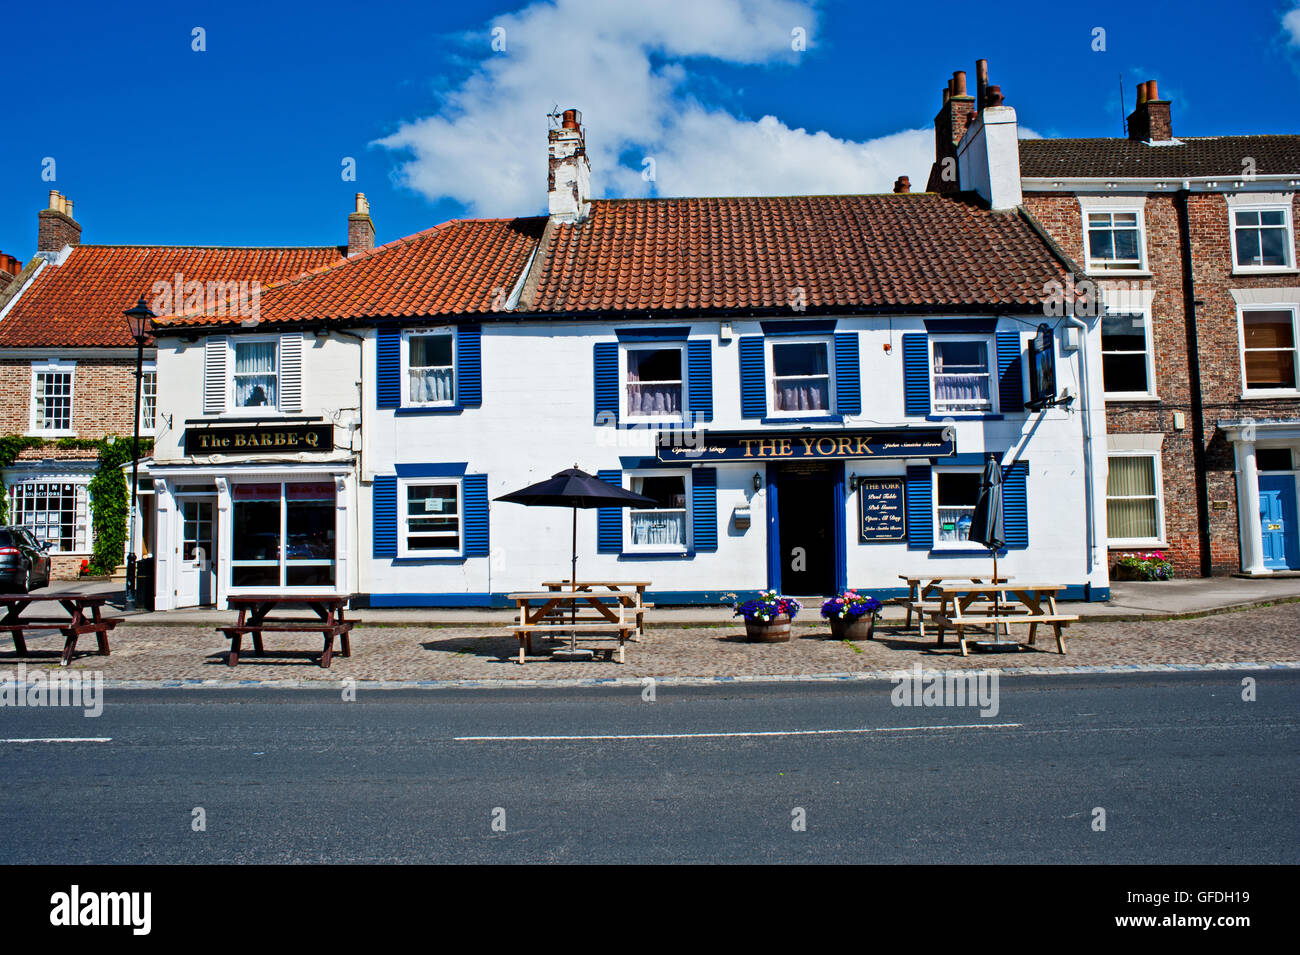 The York Pub, Easingwold, Yorkshire - Stock Image